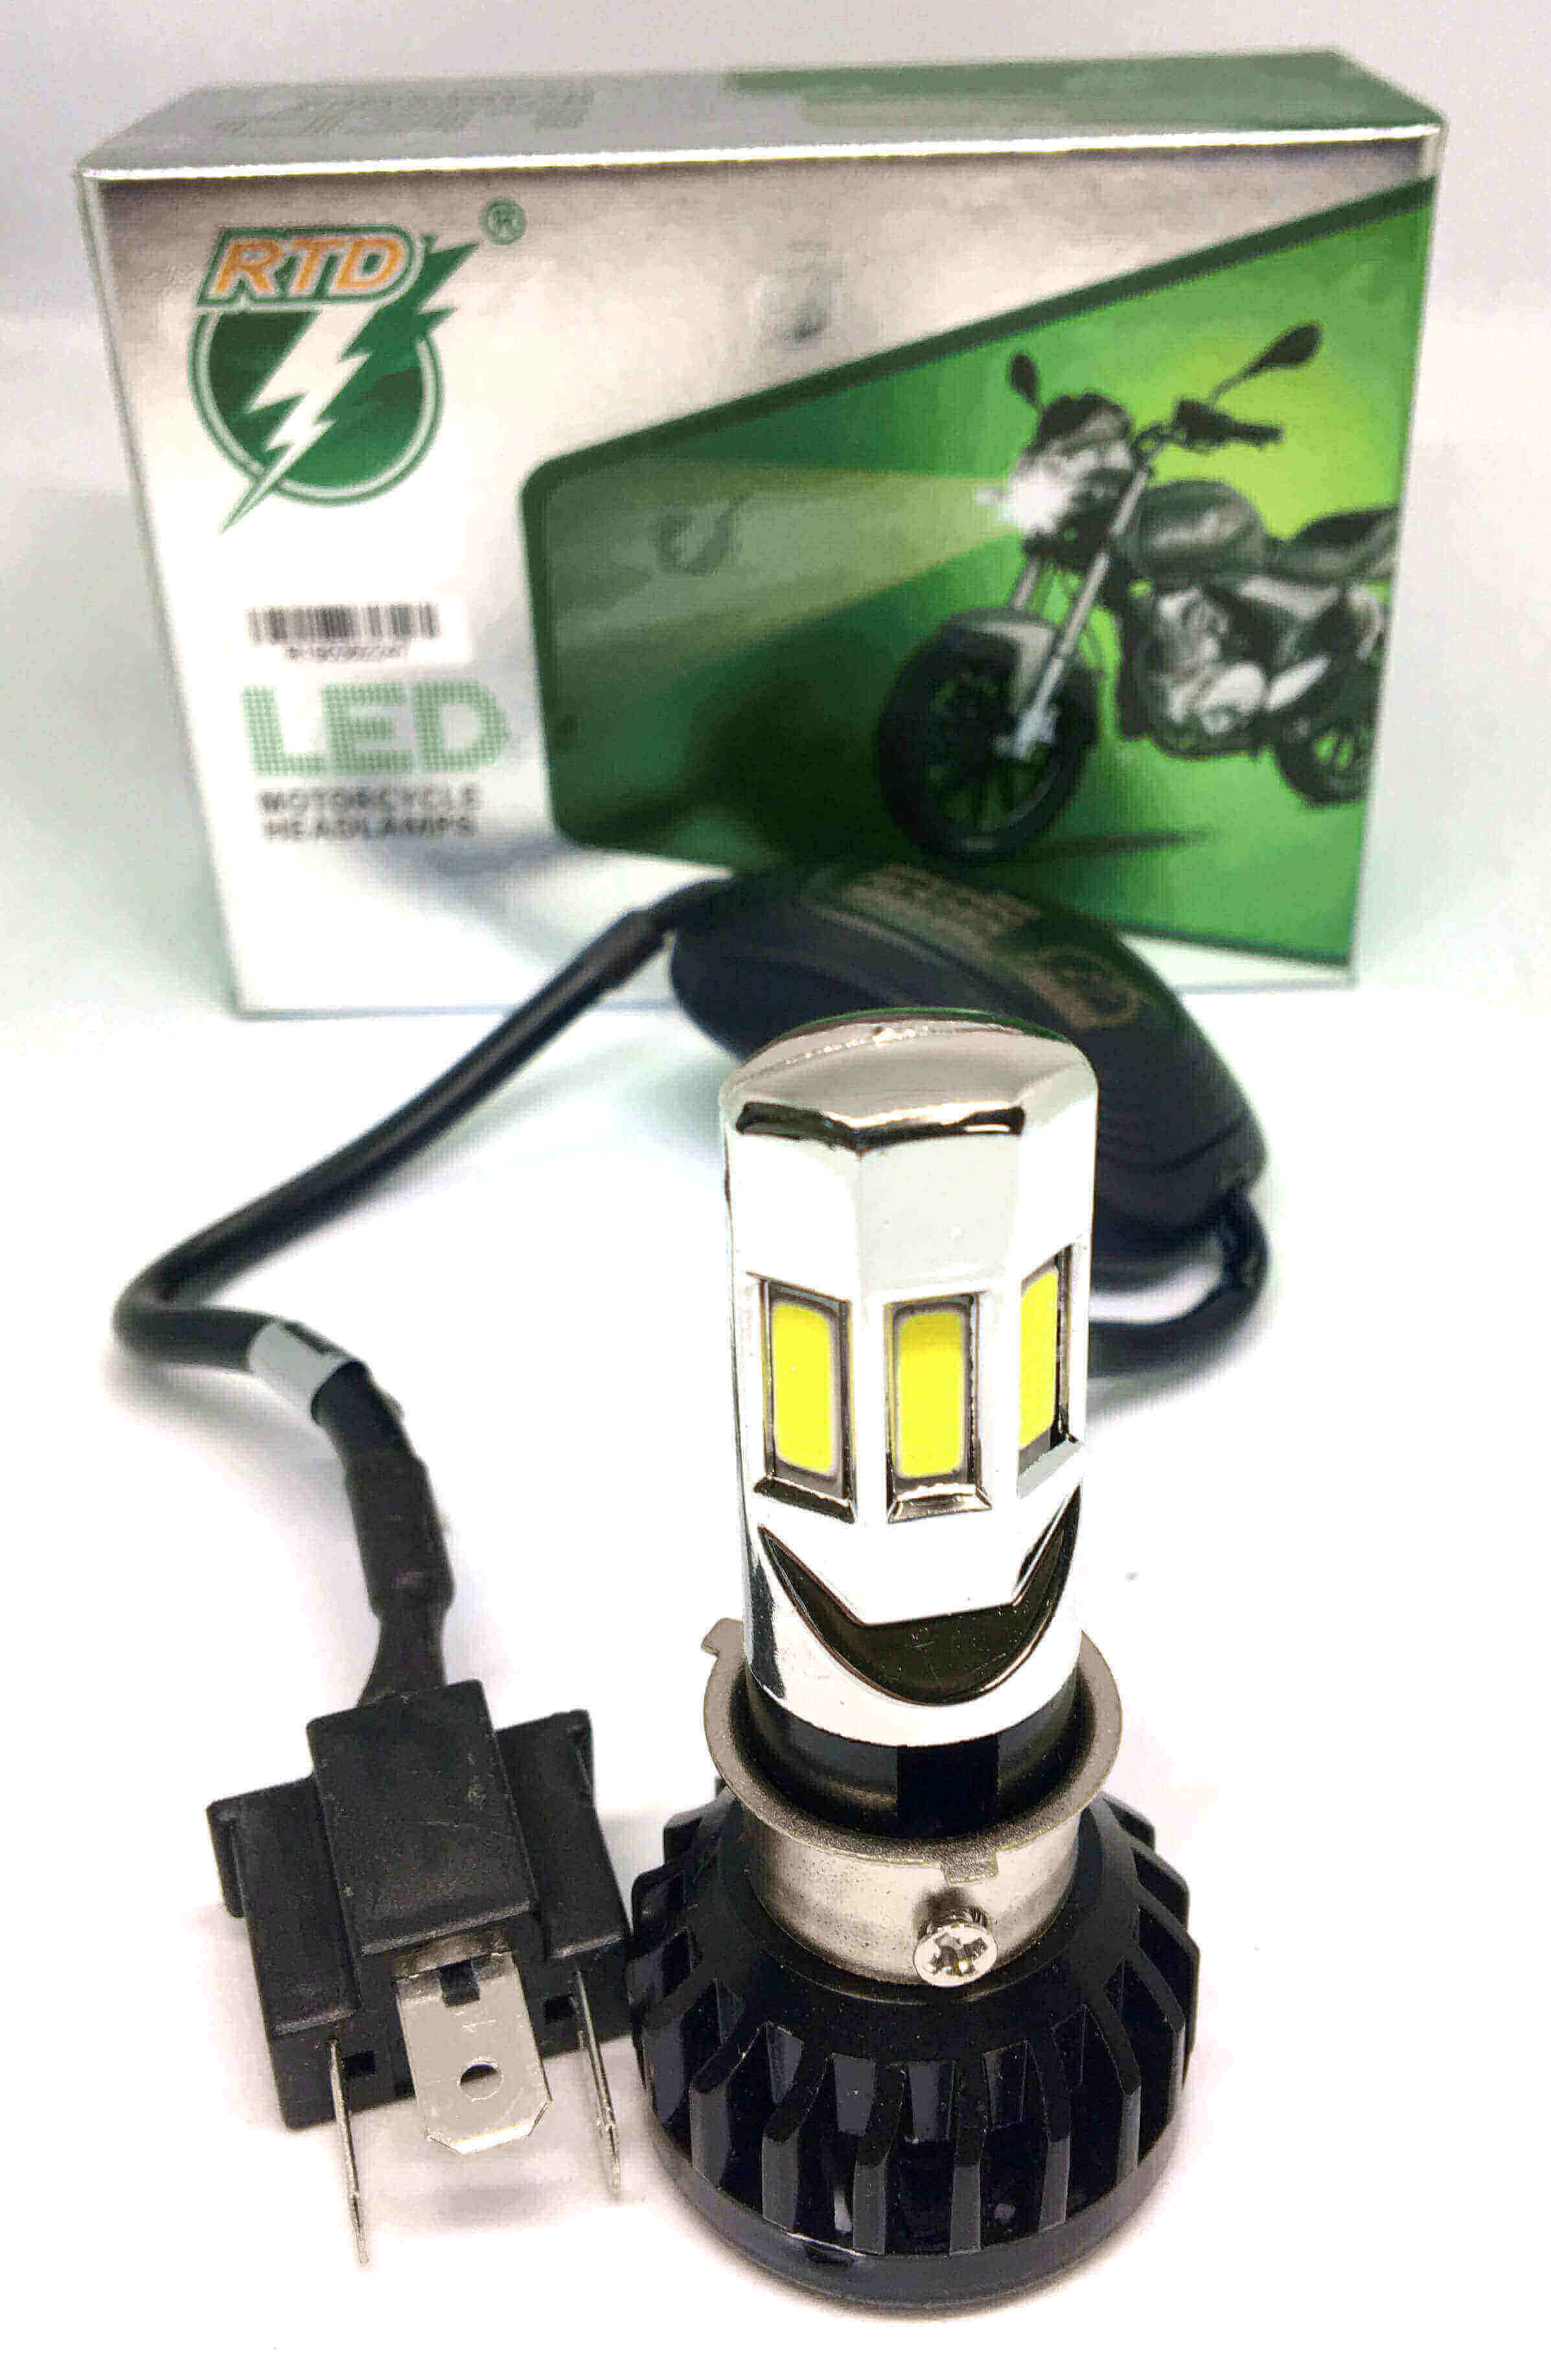 Motorcycle Headlight 12v 36w Motorcycle scooter LED head lights super Bright Bulbs - White 1Pcs.